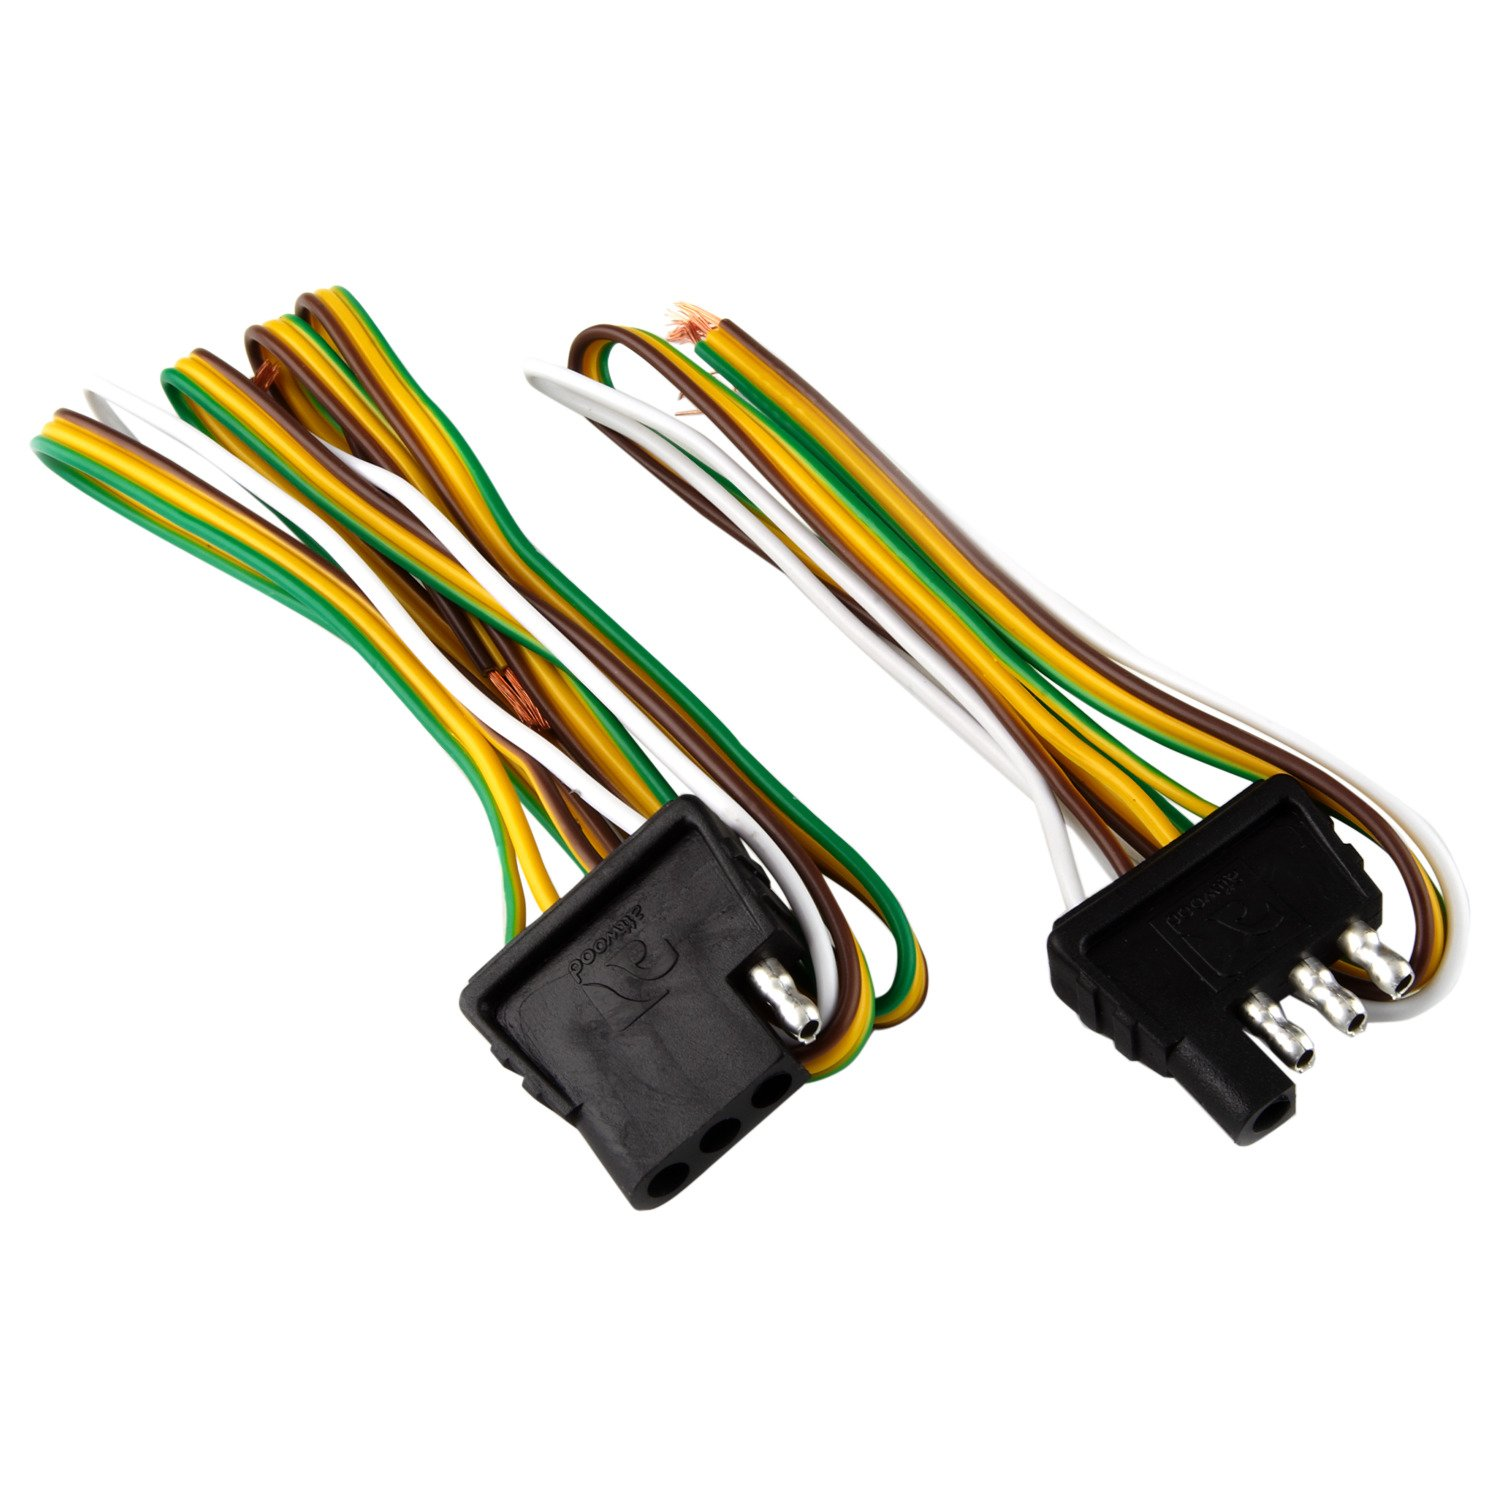 hight resolution of attwood 4 way flat wiring harness kit for vehicles and trailers wire harness tubing 4 wire wiring harness